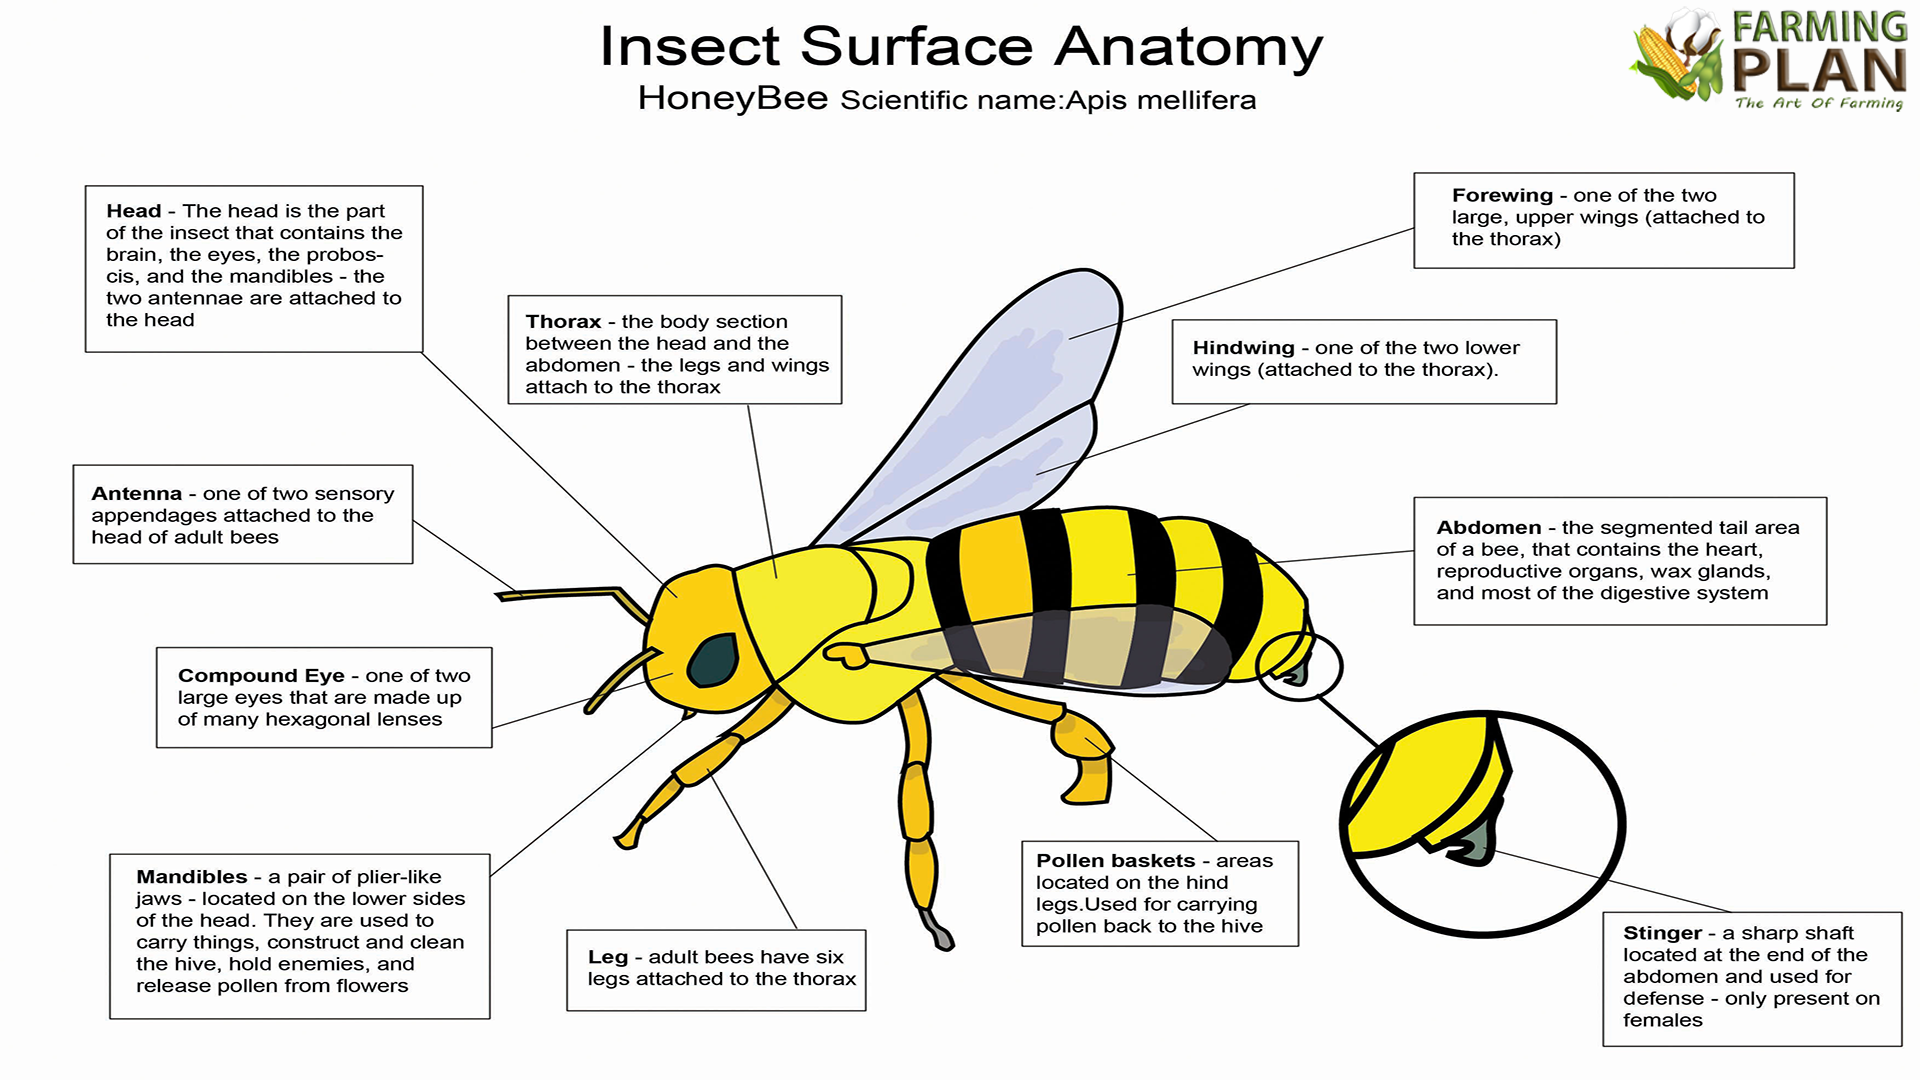 medium resolution of the external and internal anatomy of the honey bee corresponds png 1920x1080 honey bee body parts